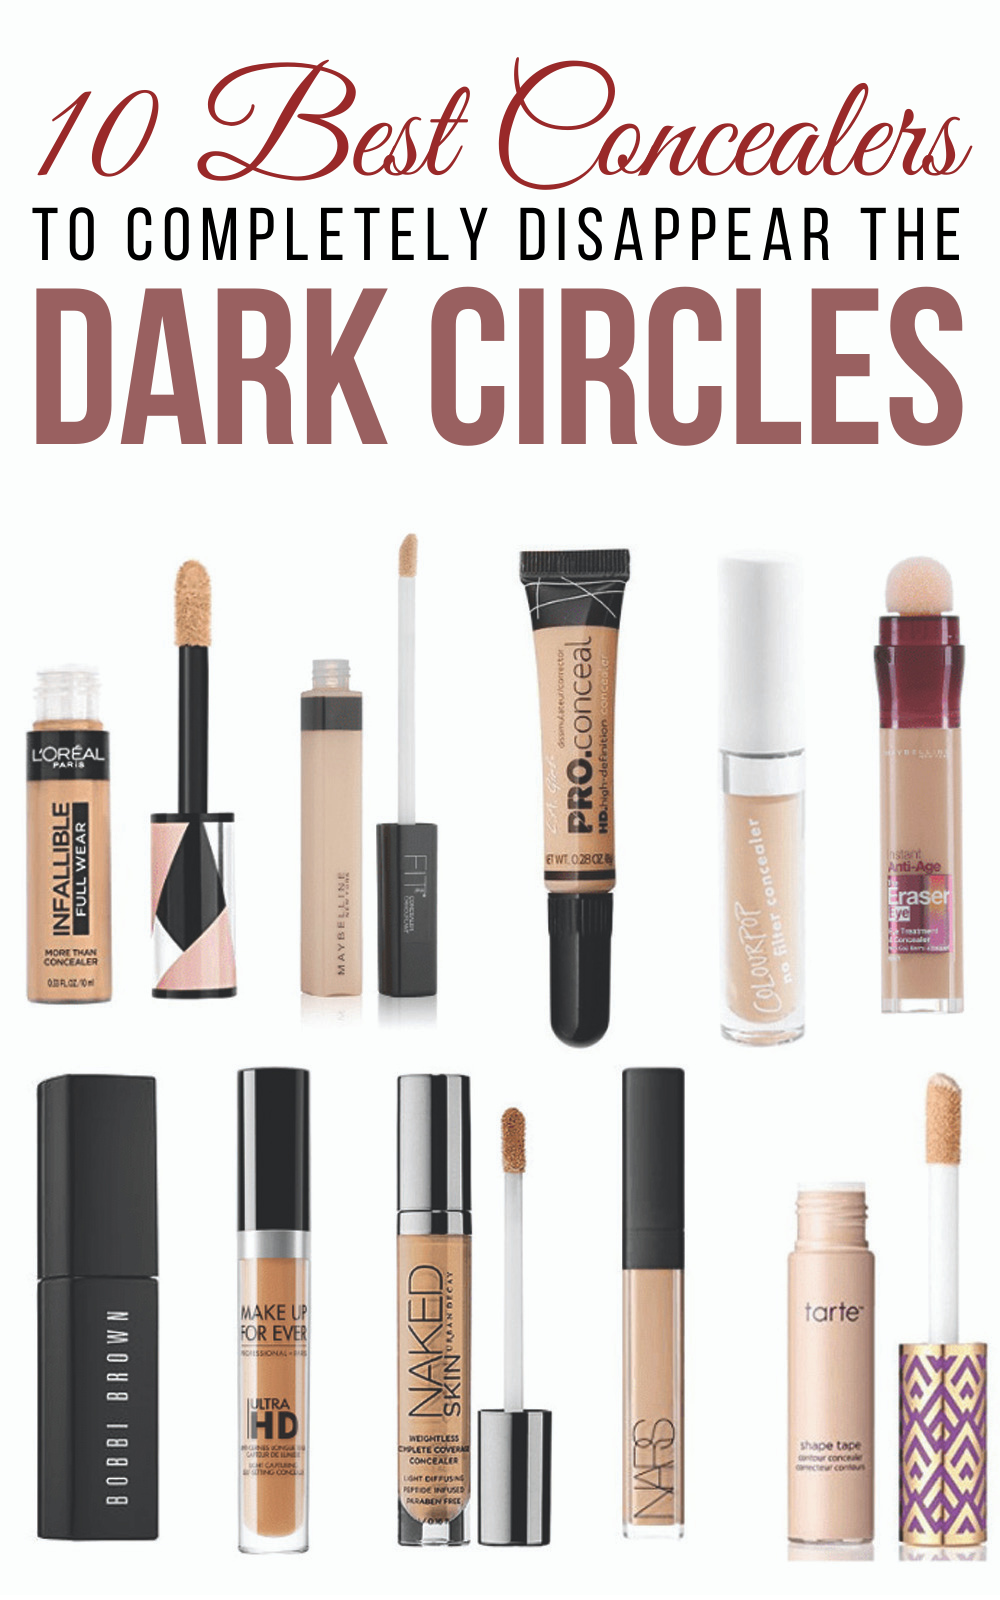 10 Useful Concealers For Dark Circles To Completely Make